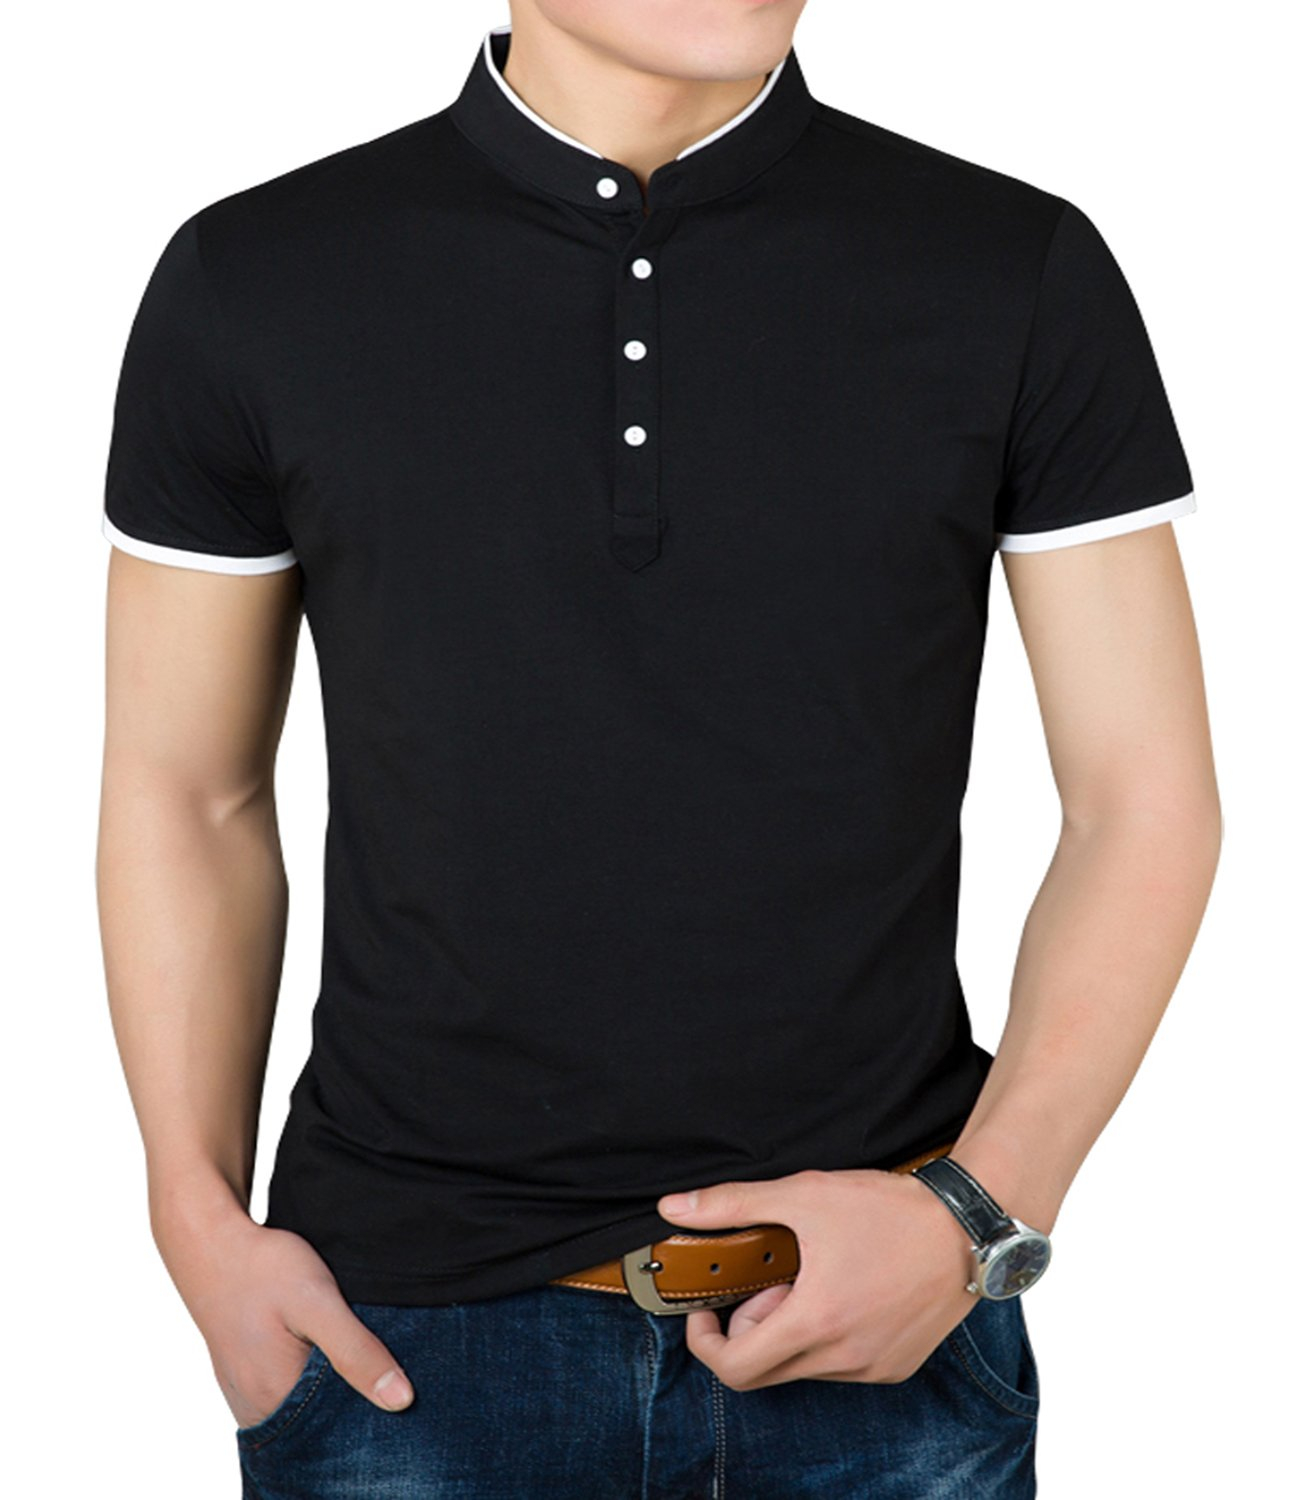 YTD Mens Summer Slim Fit Pure Color Short Sleeve Polo Casual T-Shirts (US Large, Black)